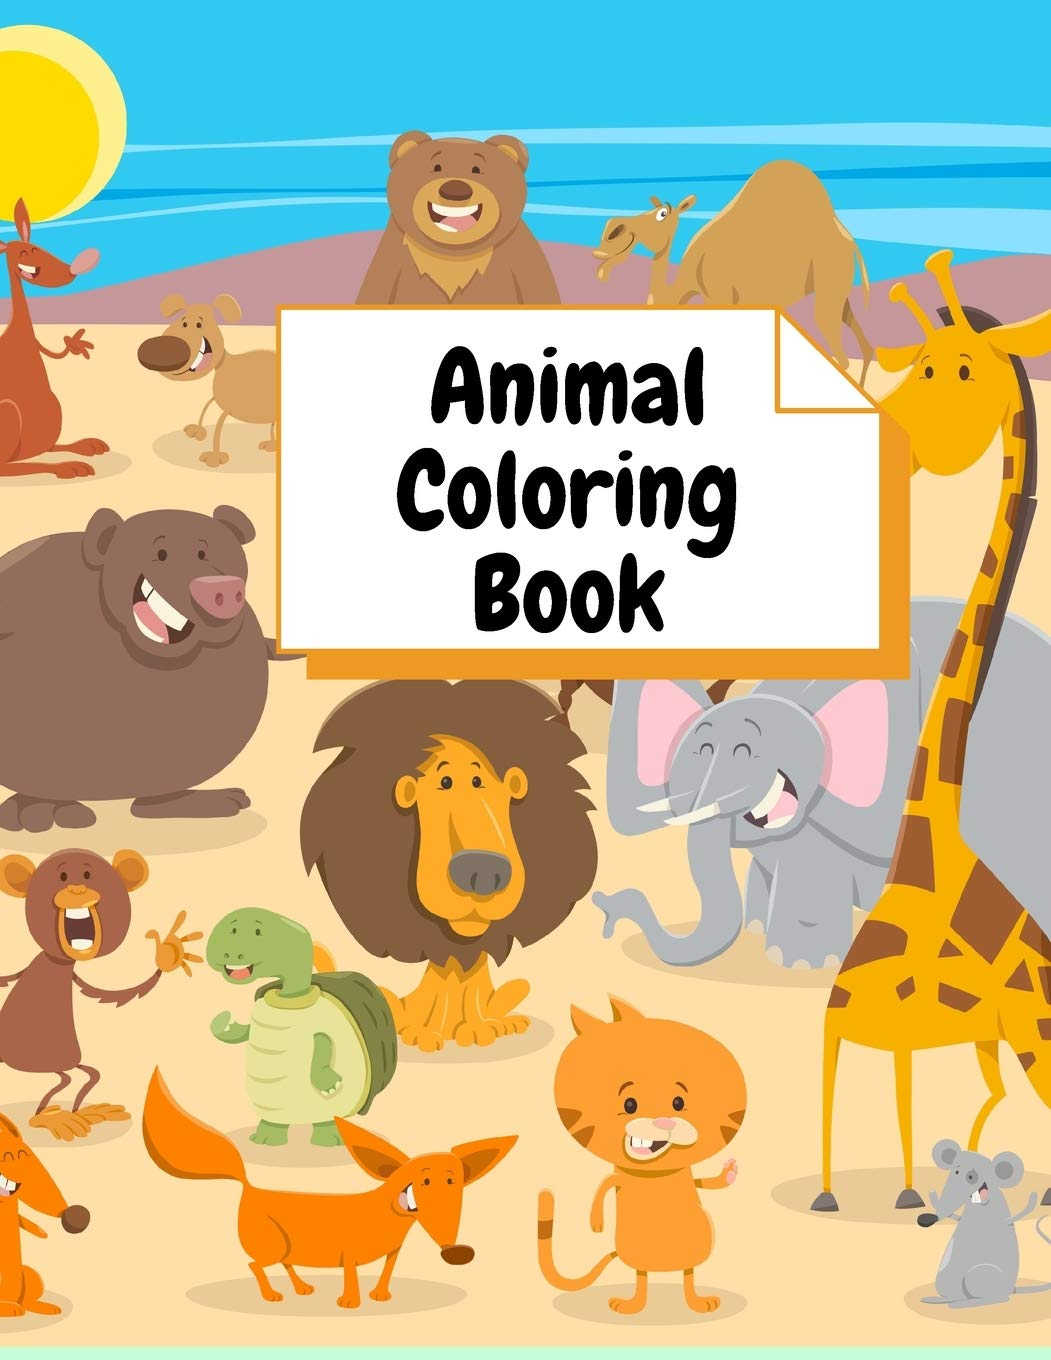 Coloring Books Animal Coloring Book:: For Girls & Boys Aged 3-8